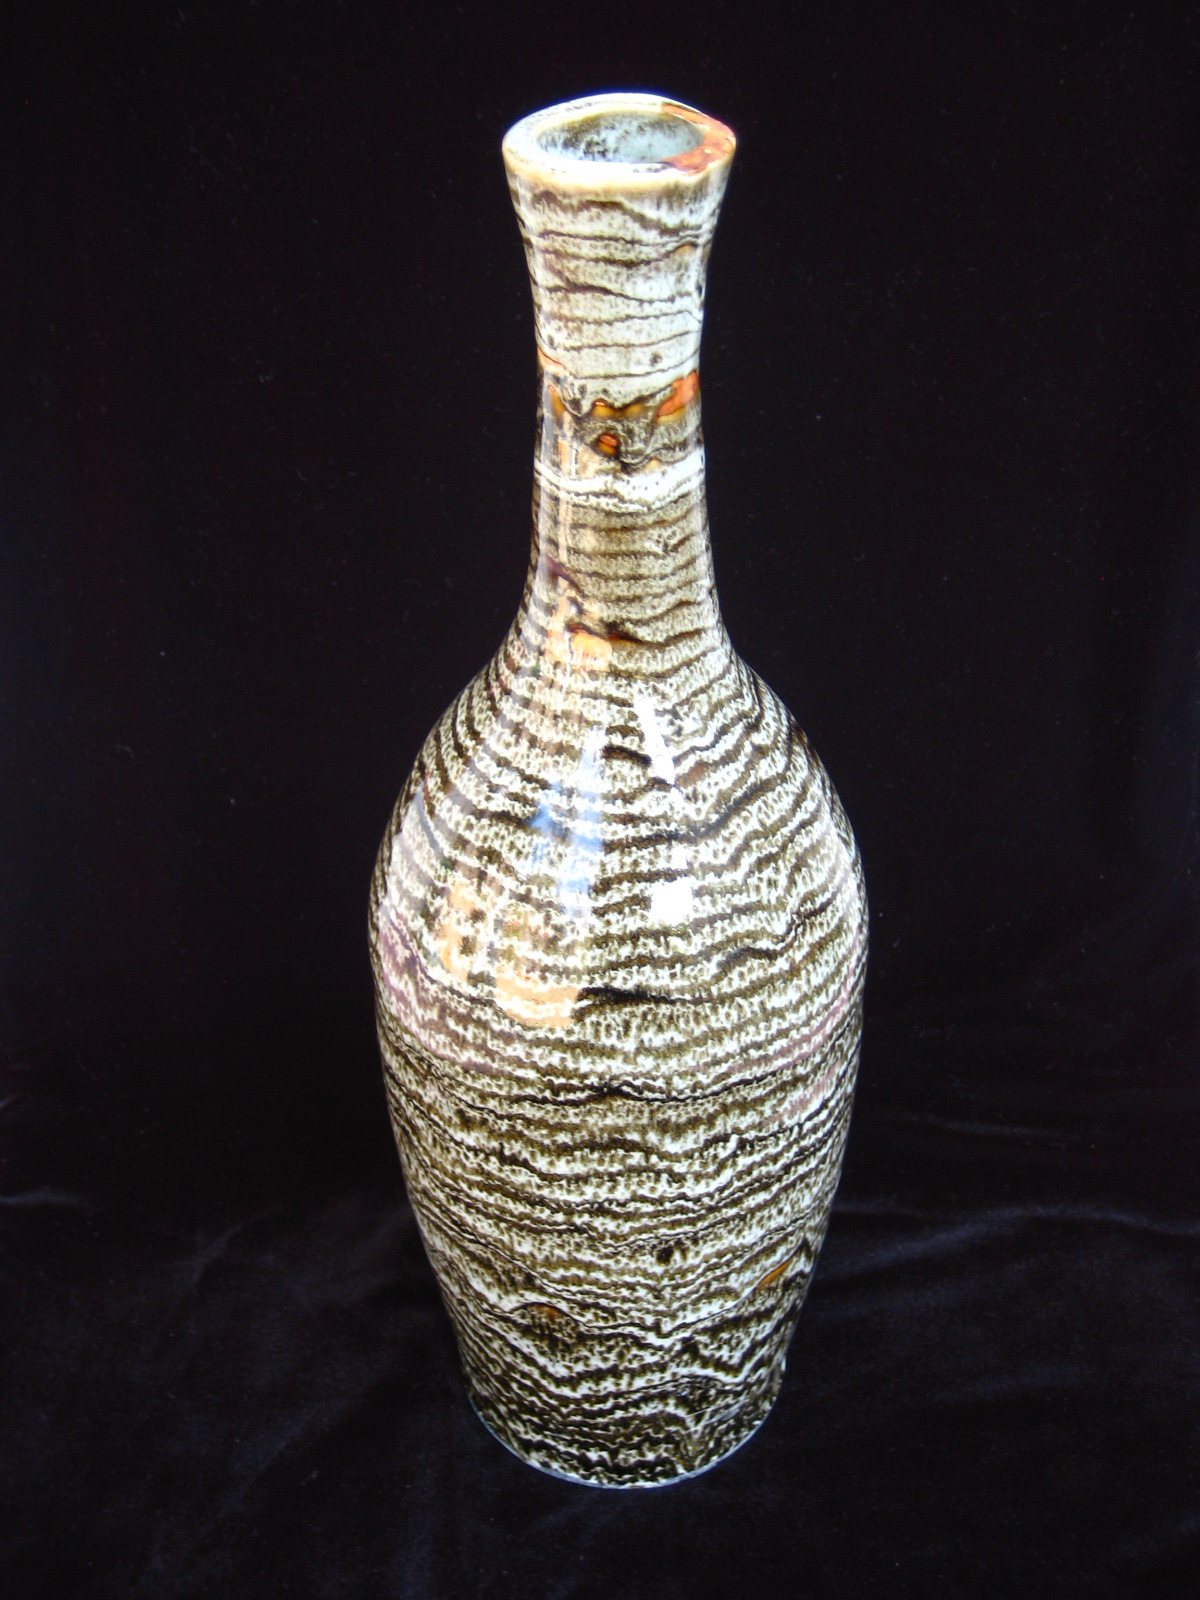 """Common Center in Temmoku  , 2003, wheel-thrown bentonite clay Fired at cone 10 reduction, 14 3/4"""" h x 4 3/4"""" dia"""